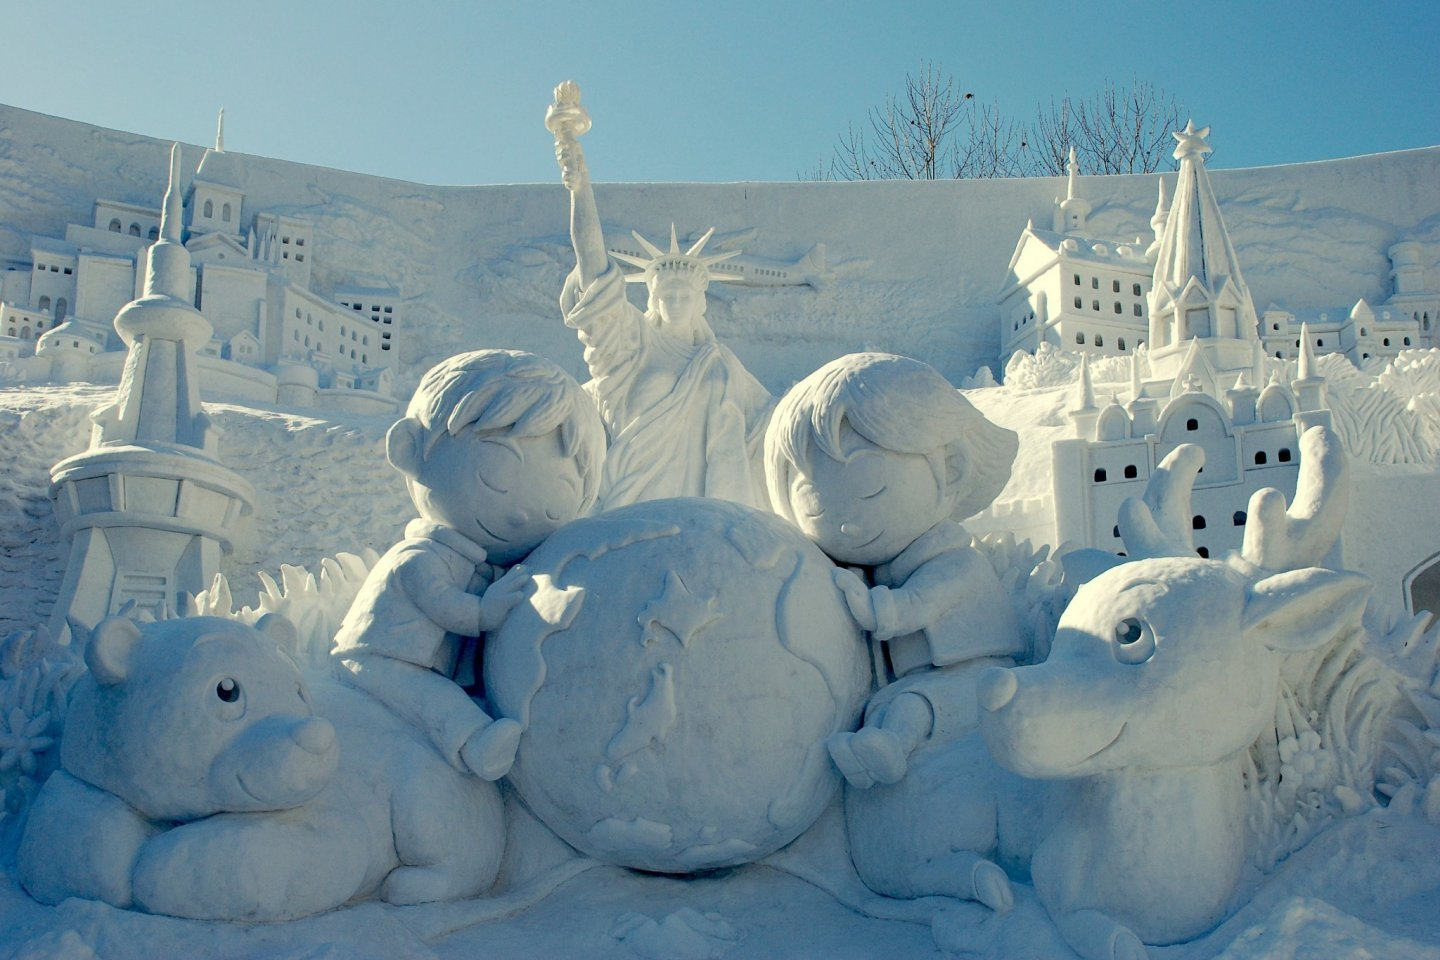 Winter Festival 2020.Sapporo Snow Festival 2020 January February Events In